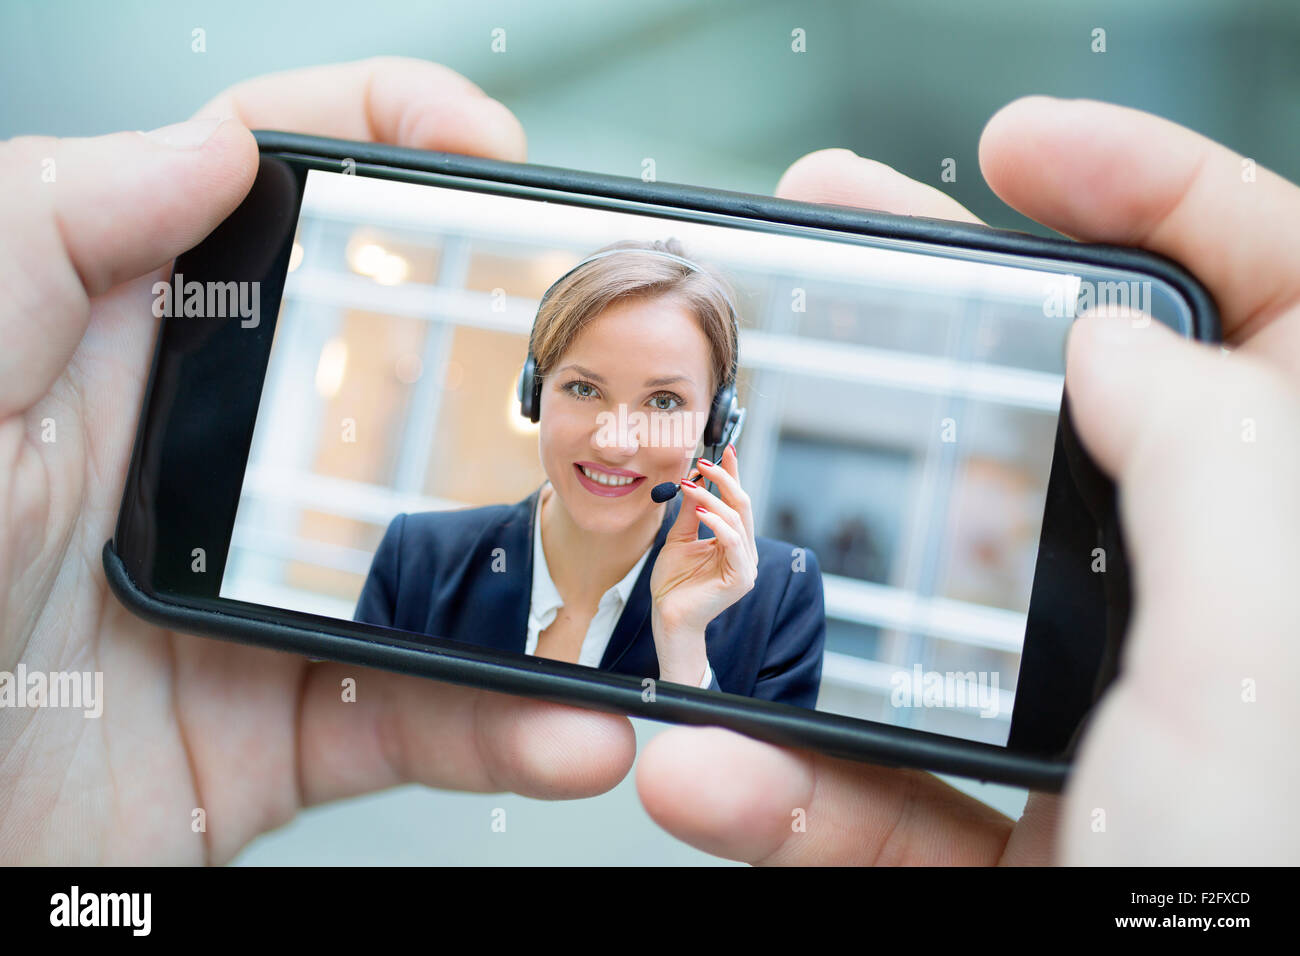 Businesswoman chatting with smart phone Photo Stock